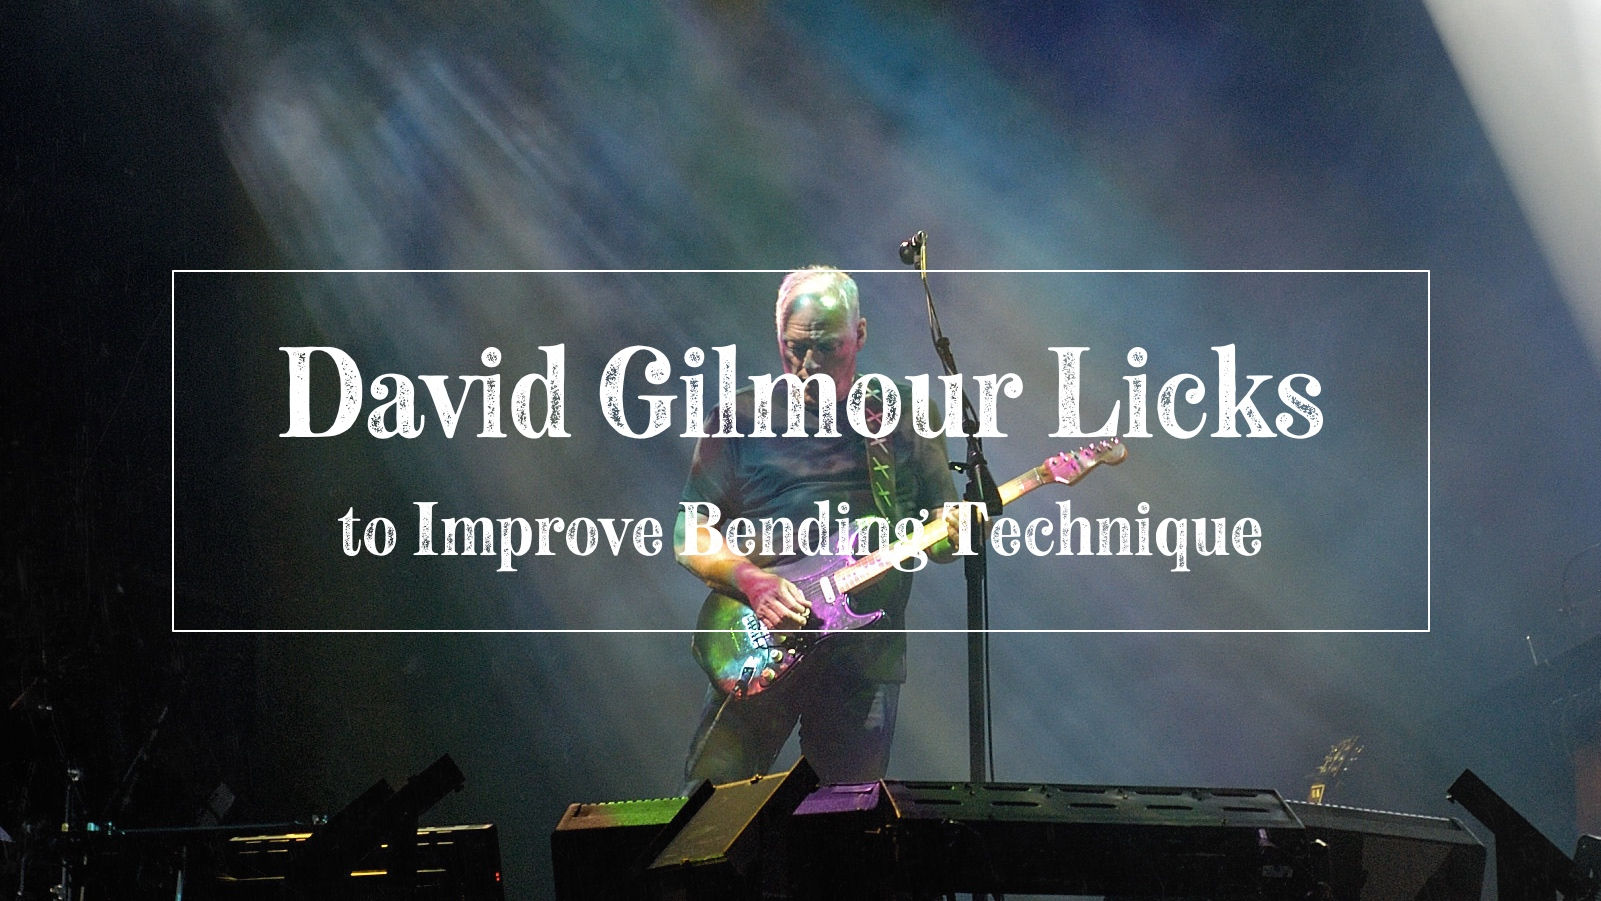 David Gilmour licks to improve bending technique